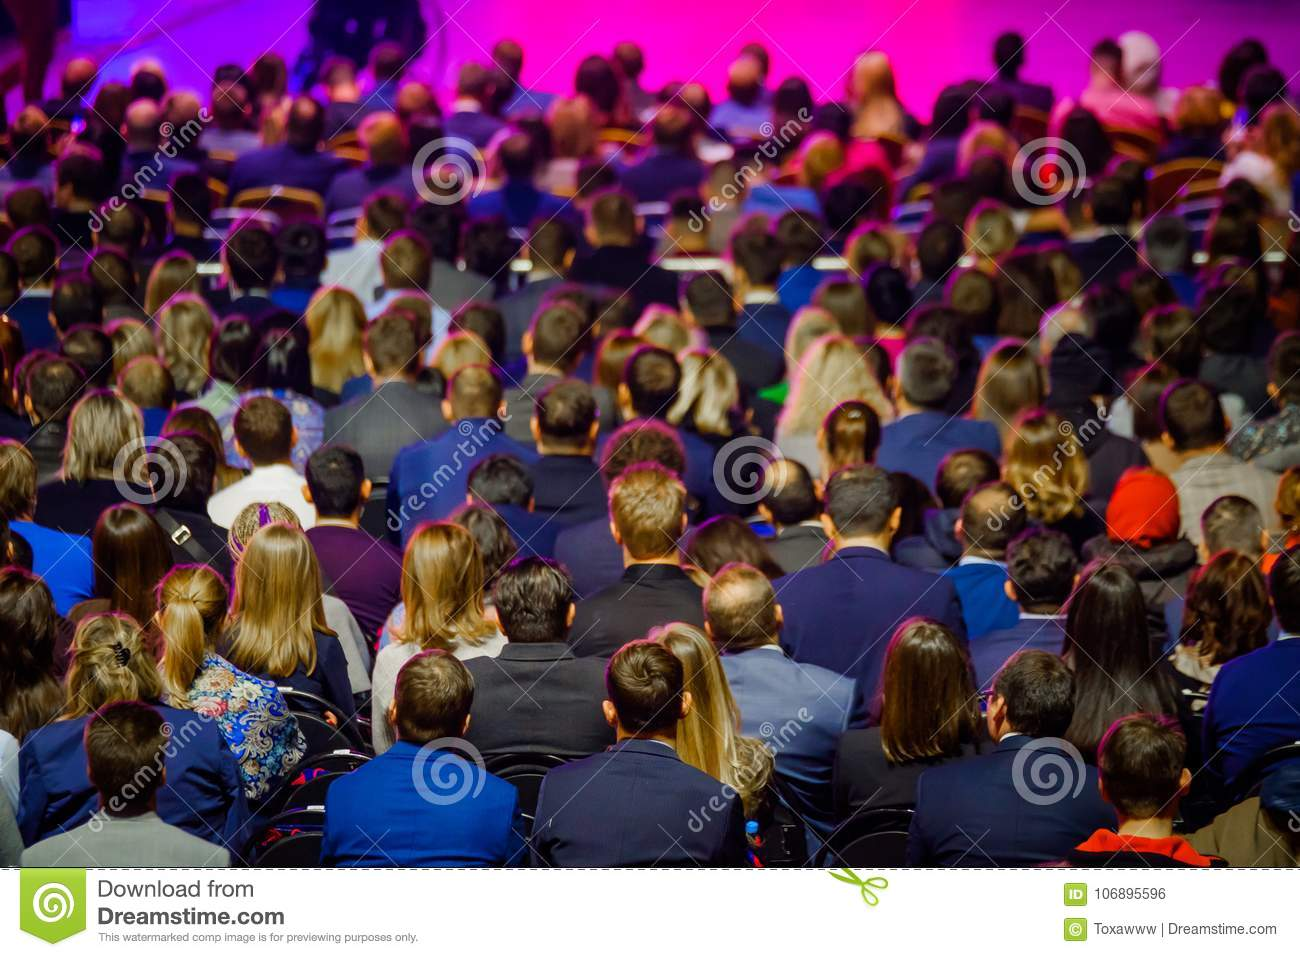 People attend business conference in congress hall